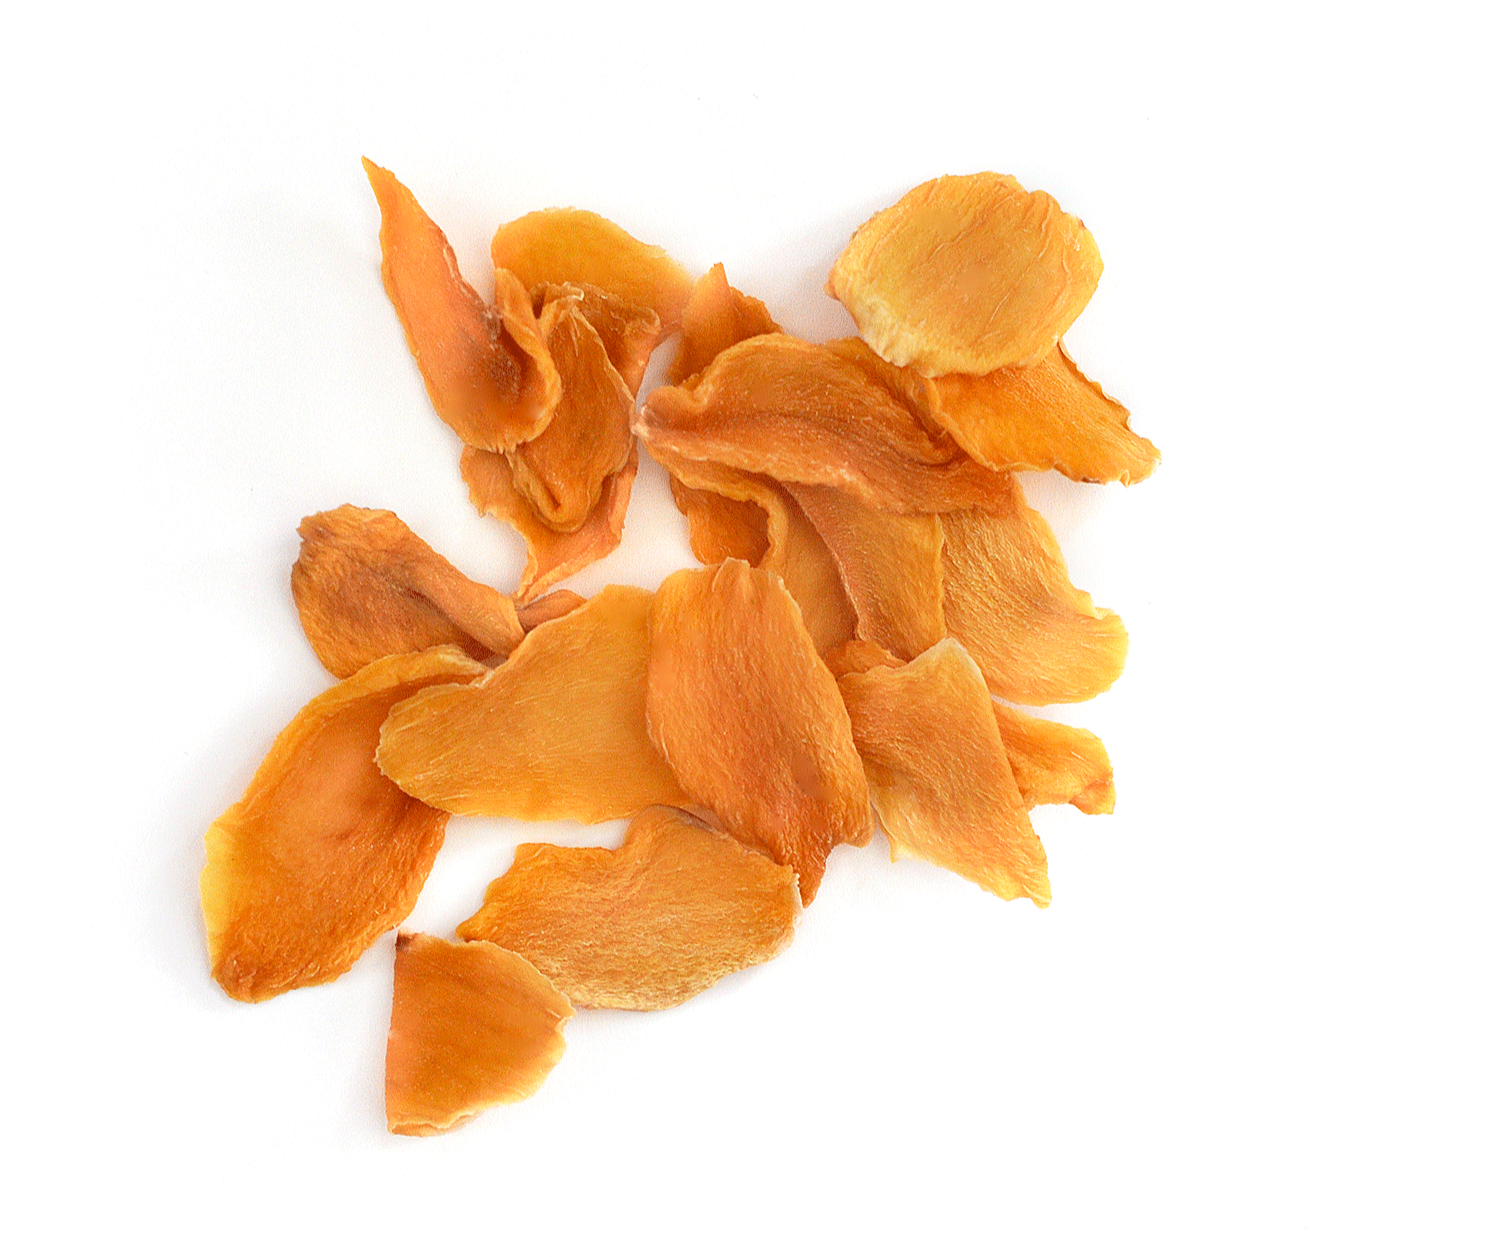 Healthy dried mango pieces clumped together on a white background